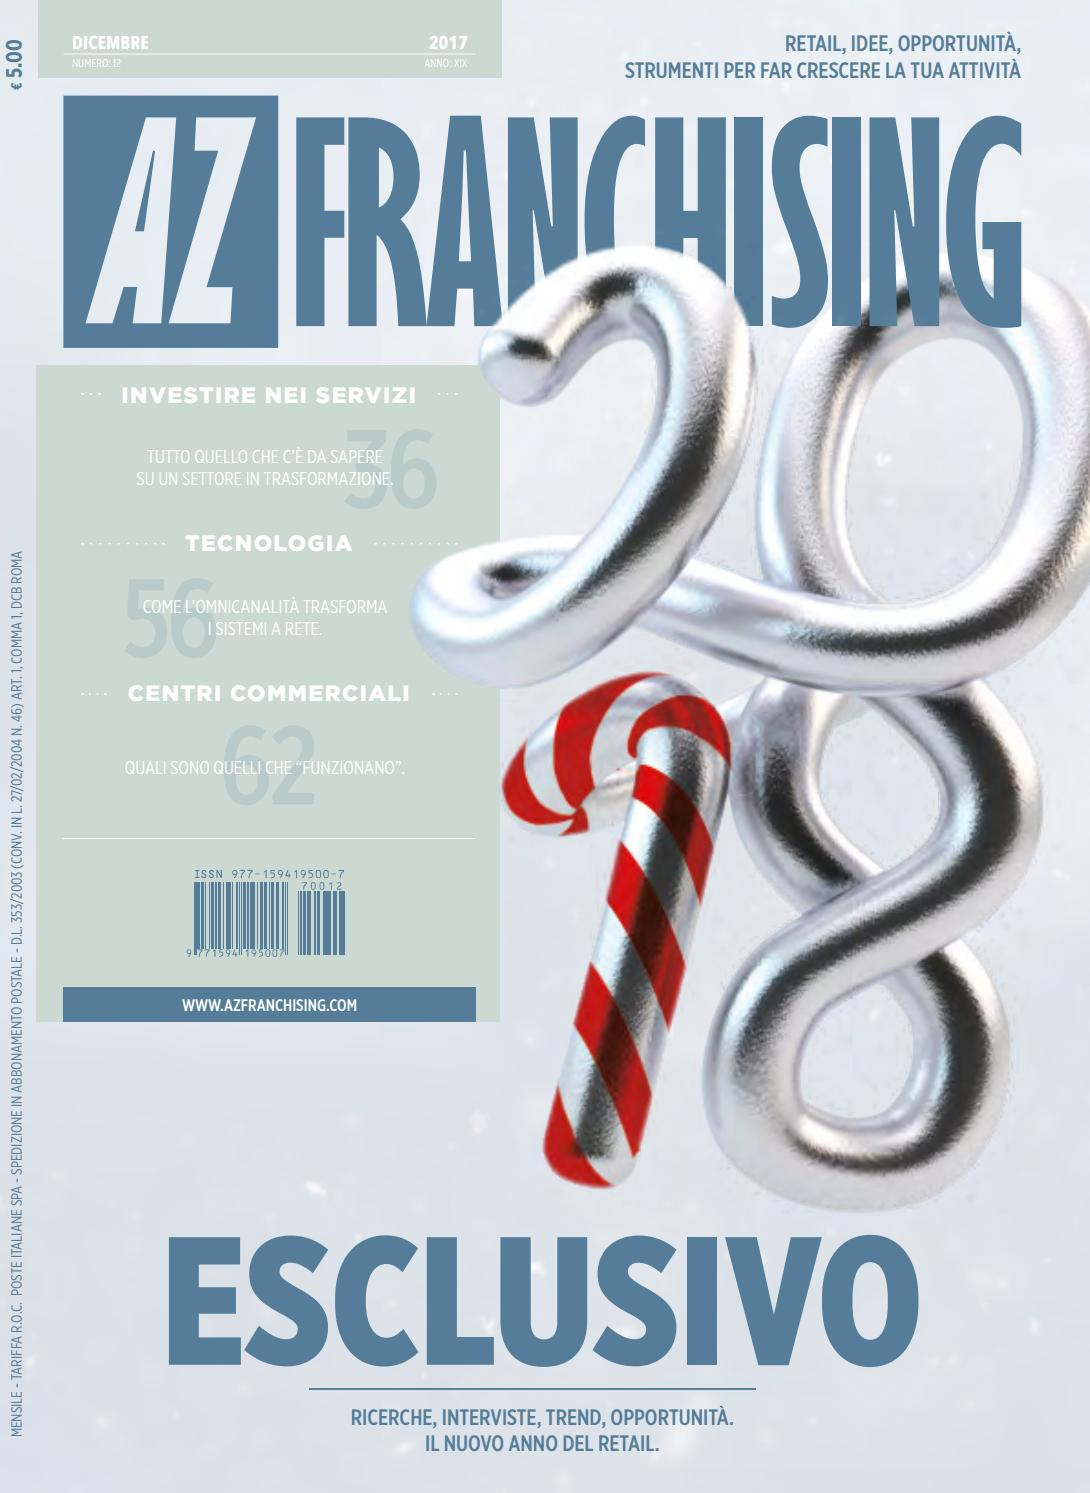 Az franchising dicembre 2017 by AZ FRANCHISING - issuu 40294c88a44